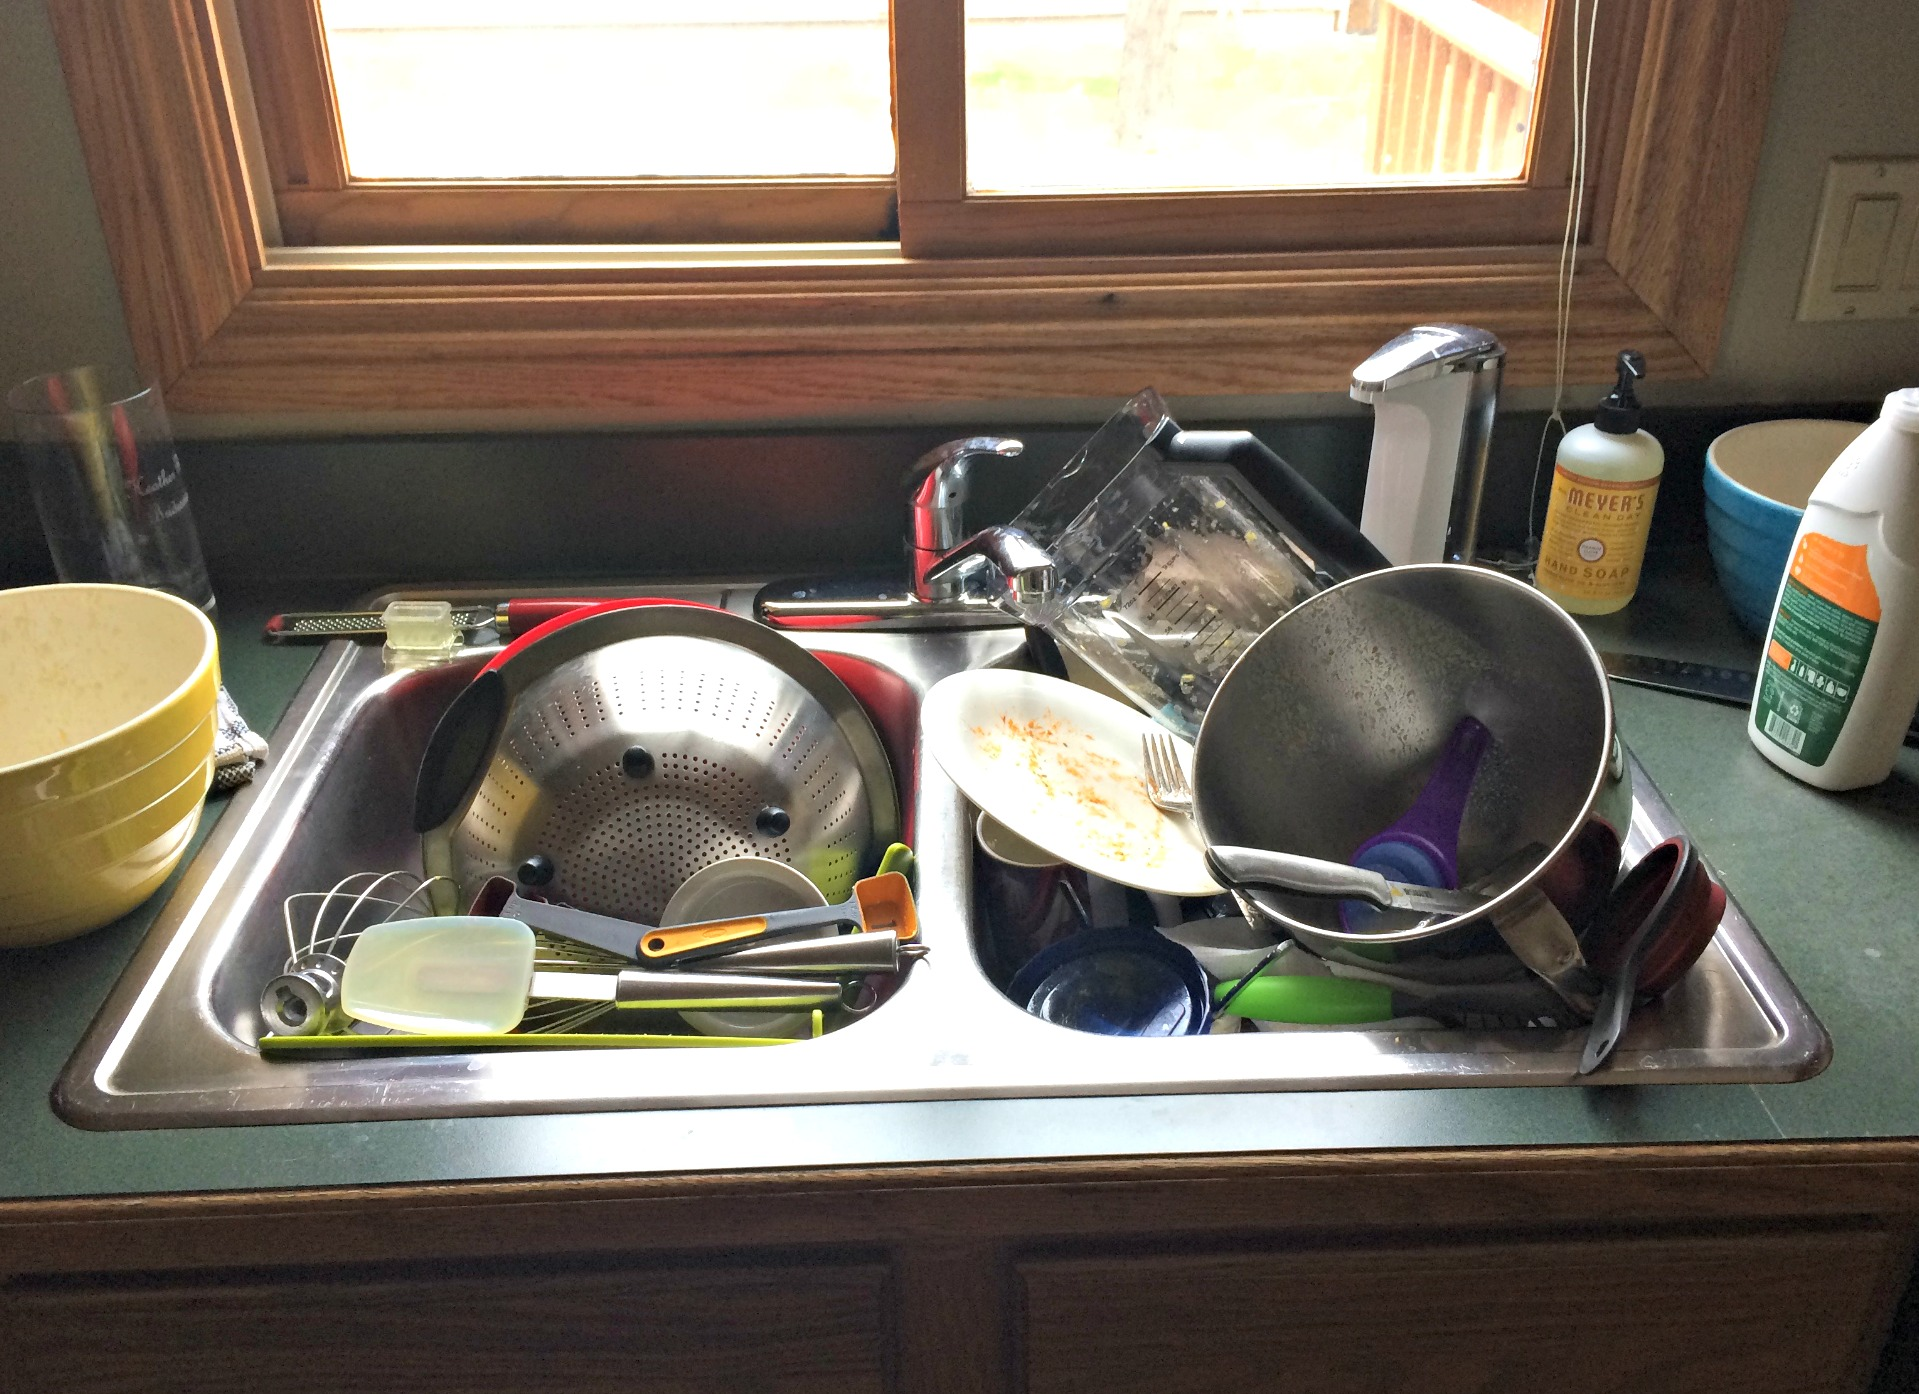 dishes in the sink